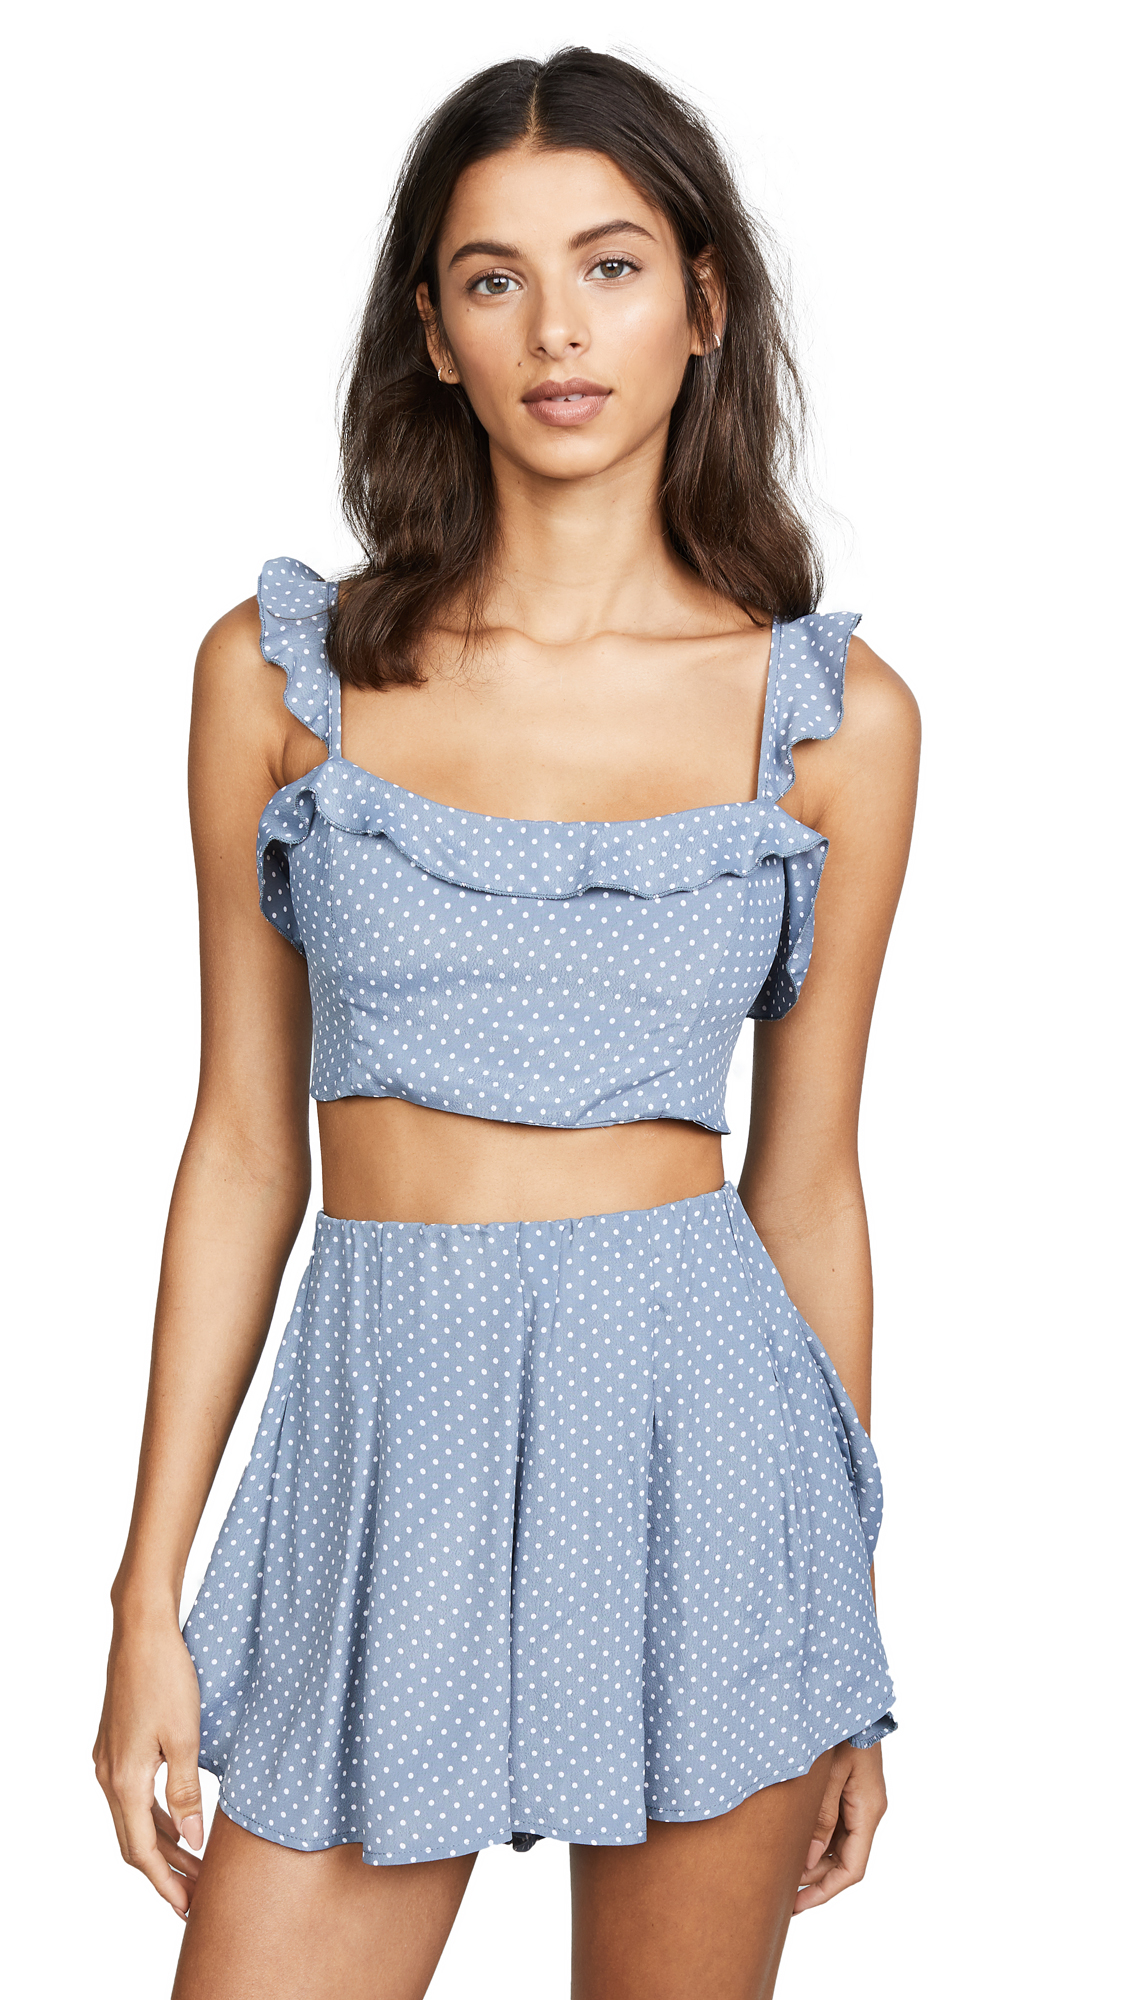 BLUE LIFE Perfect Crush Top in Mystic Blue Dot